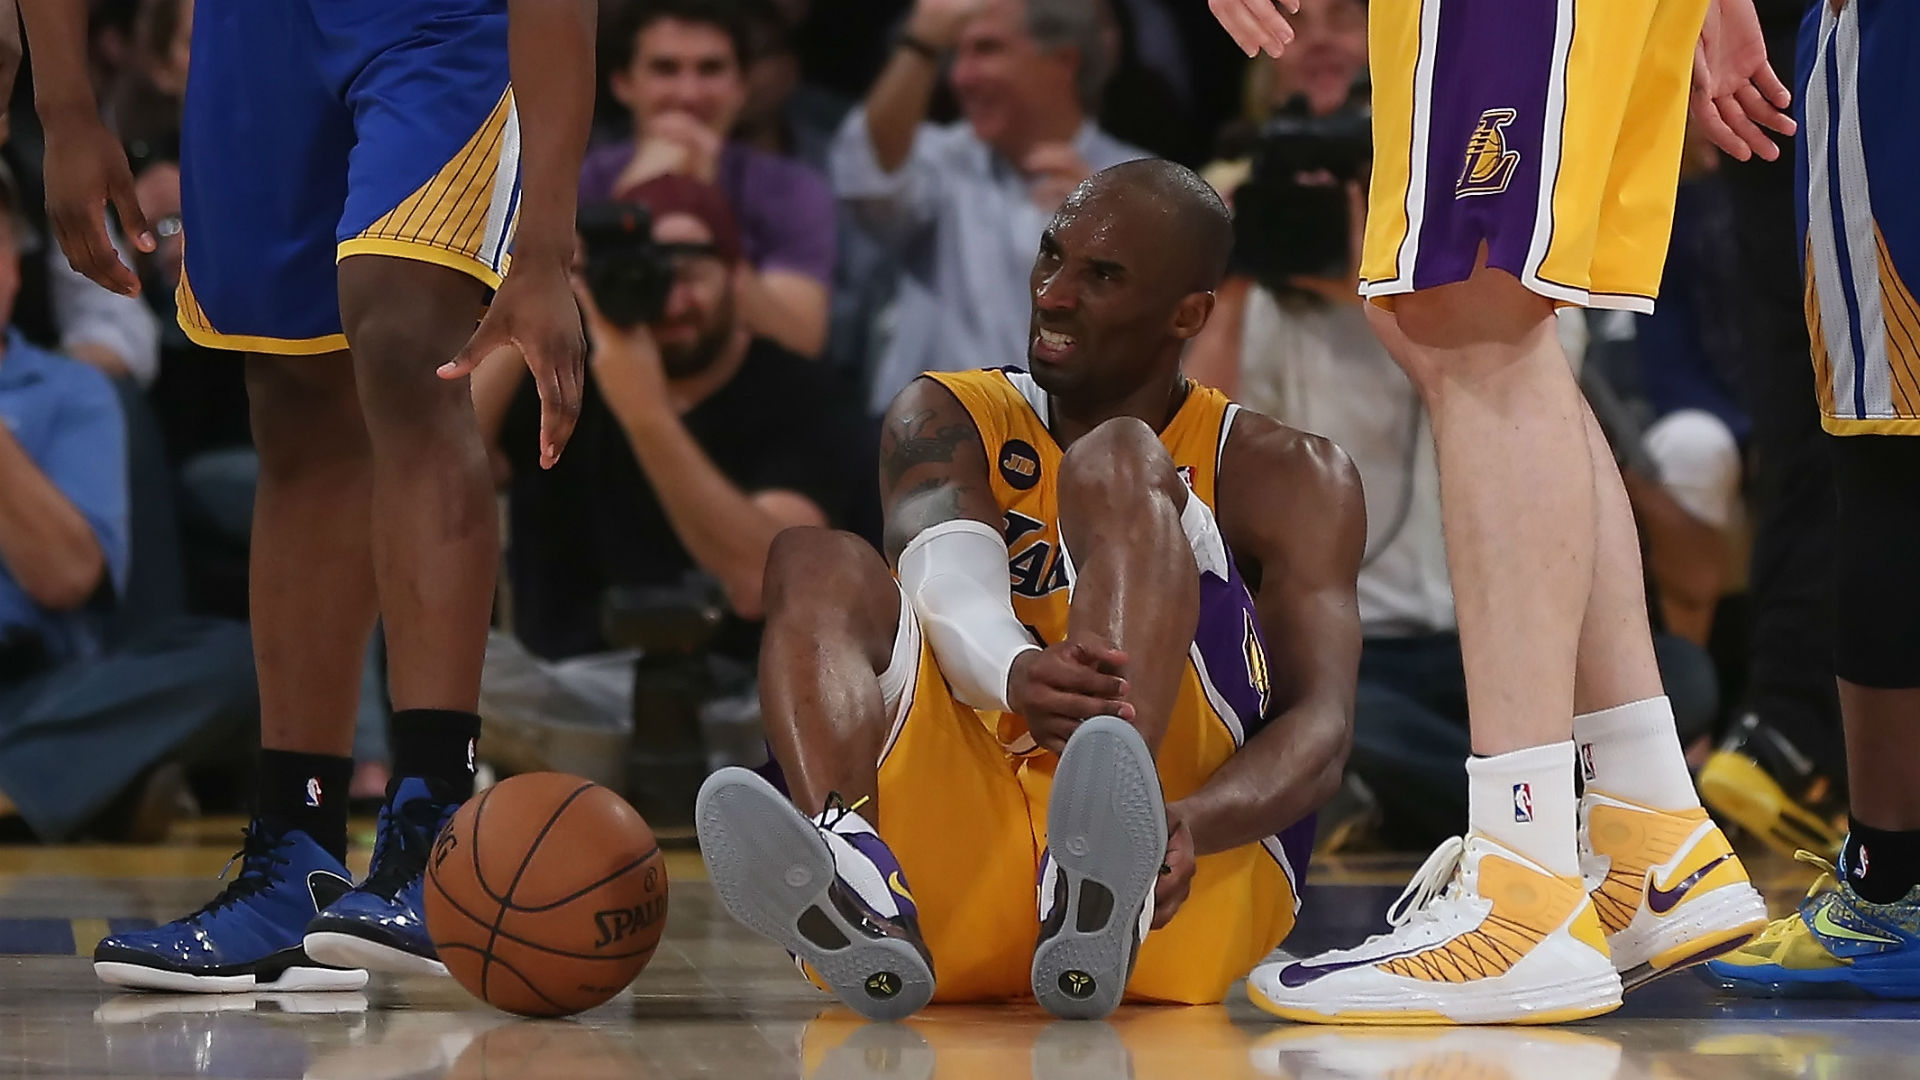 Kobe Bryant tore his Achilles against the Golden State Warriors in April 2013.